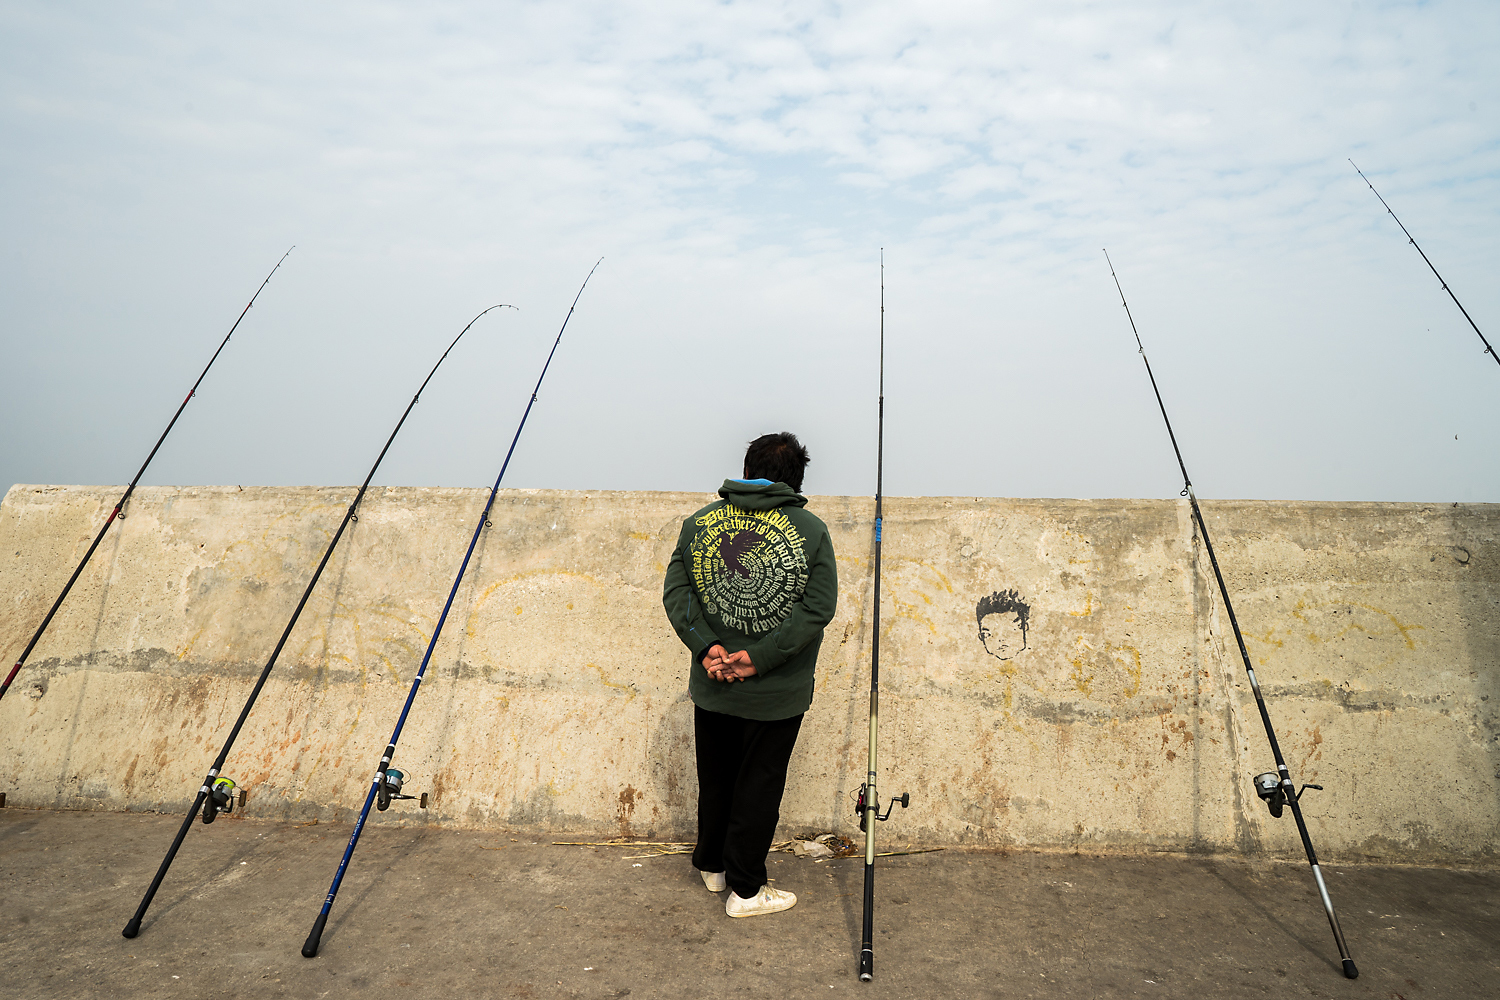 An angler waits for a bite at an embankment near the Shuitou ferry terminal. The embankment was built alongside the ferry terminal and lighthouses on reclaimed land and part of what was formerly a fishing village. Some local residents from the village protested the development, which made them lose their natural port and fishing livelihood and also harmed the habitat of the horseshoe crab.